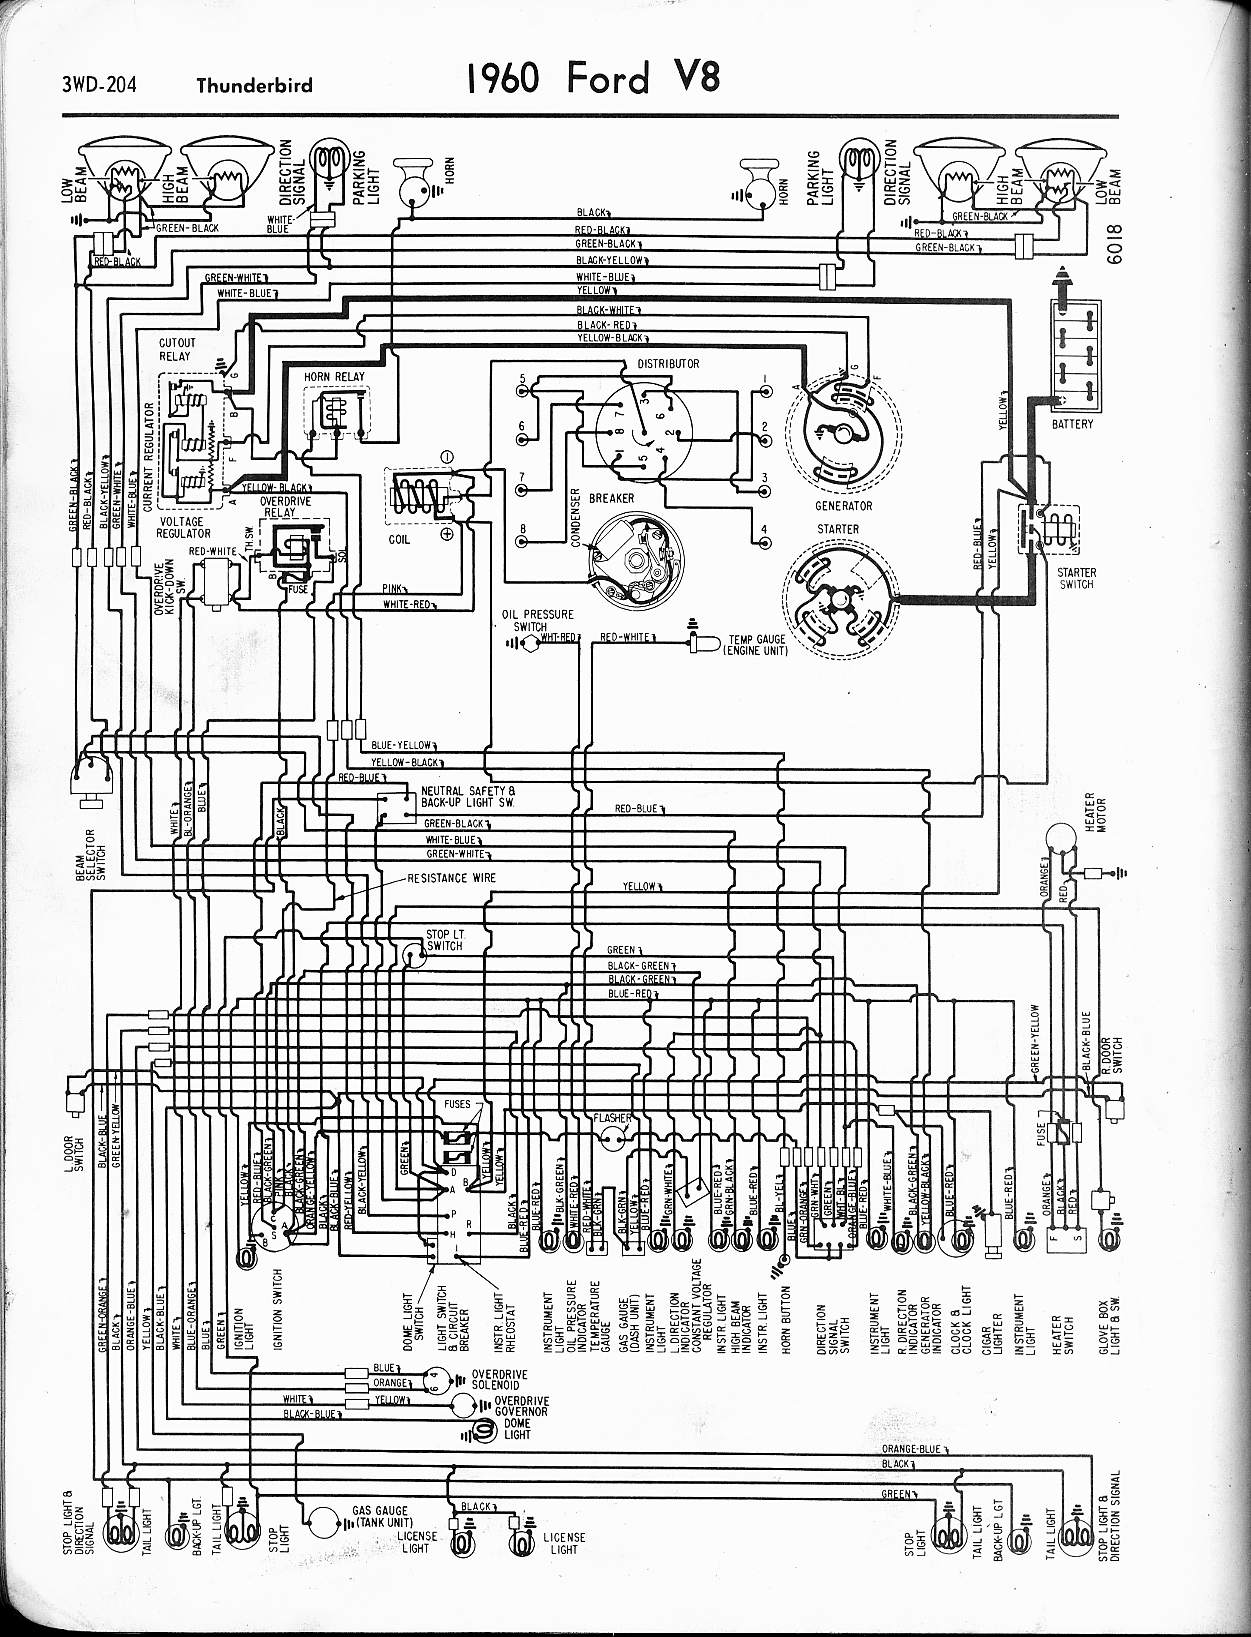 1964 4000 Ford Wiring Diagram Library Ge Oven Jsp28gop3bg 1960 Thunderbird